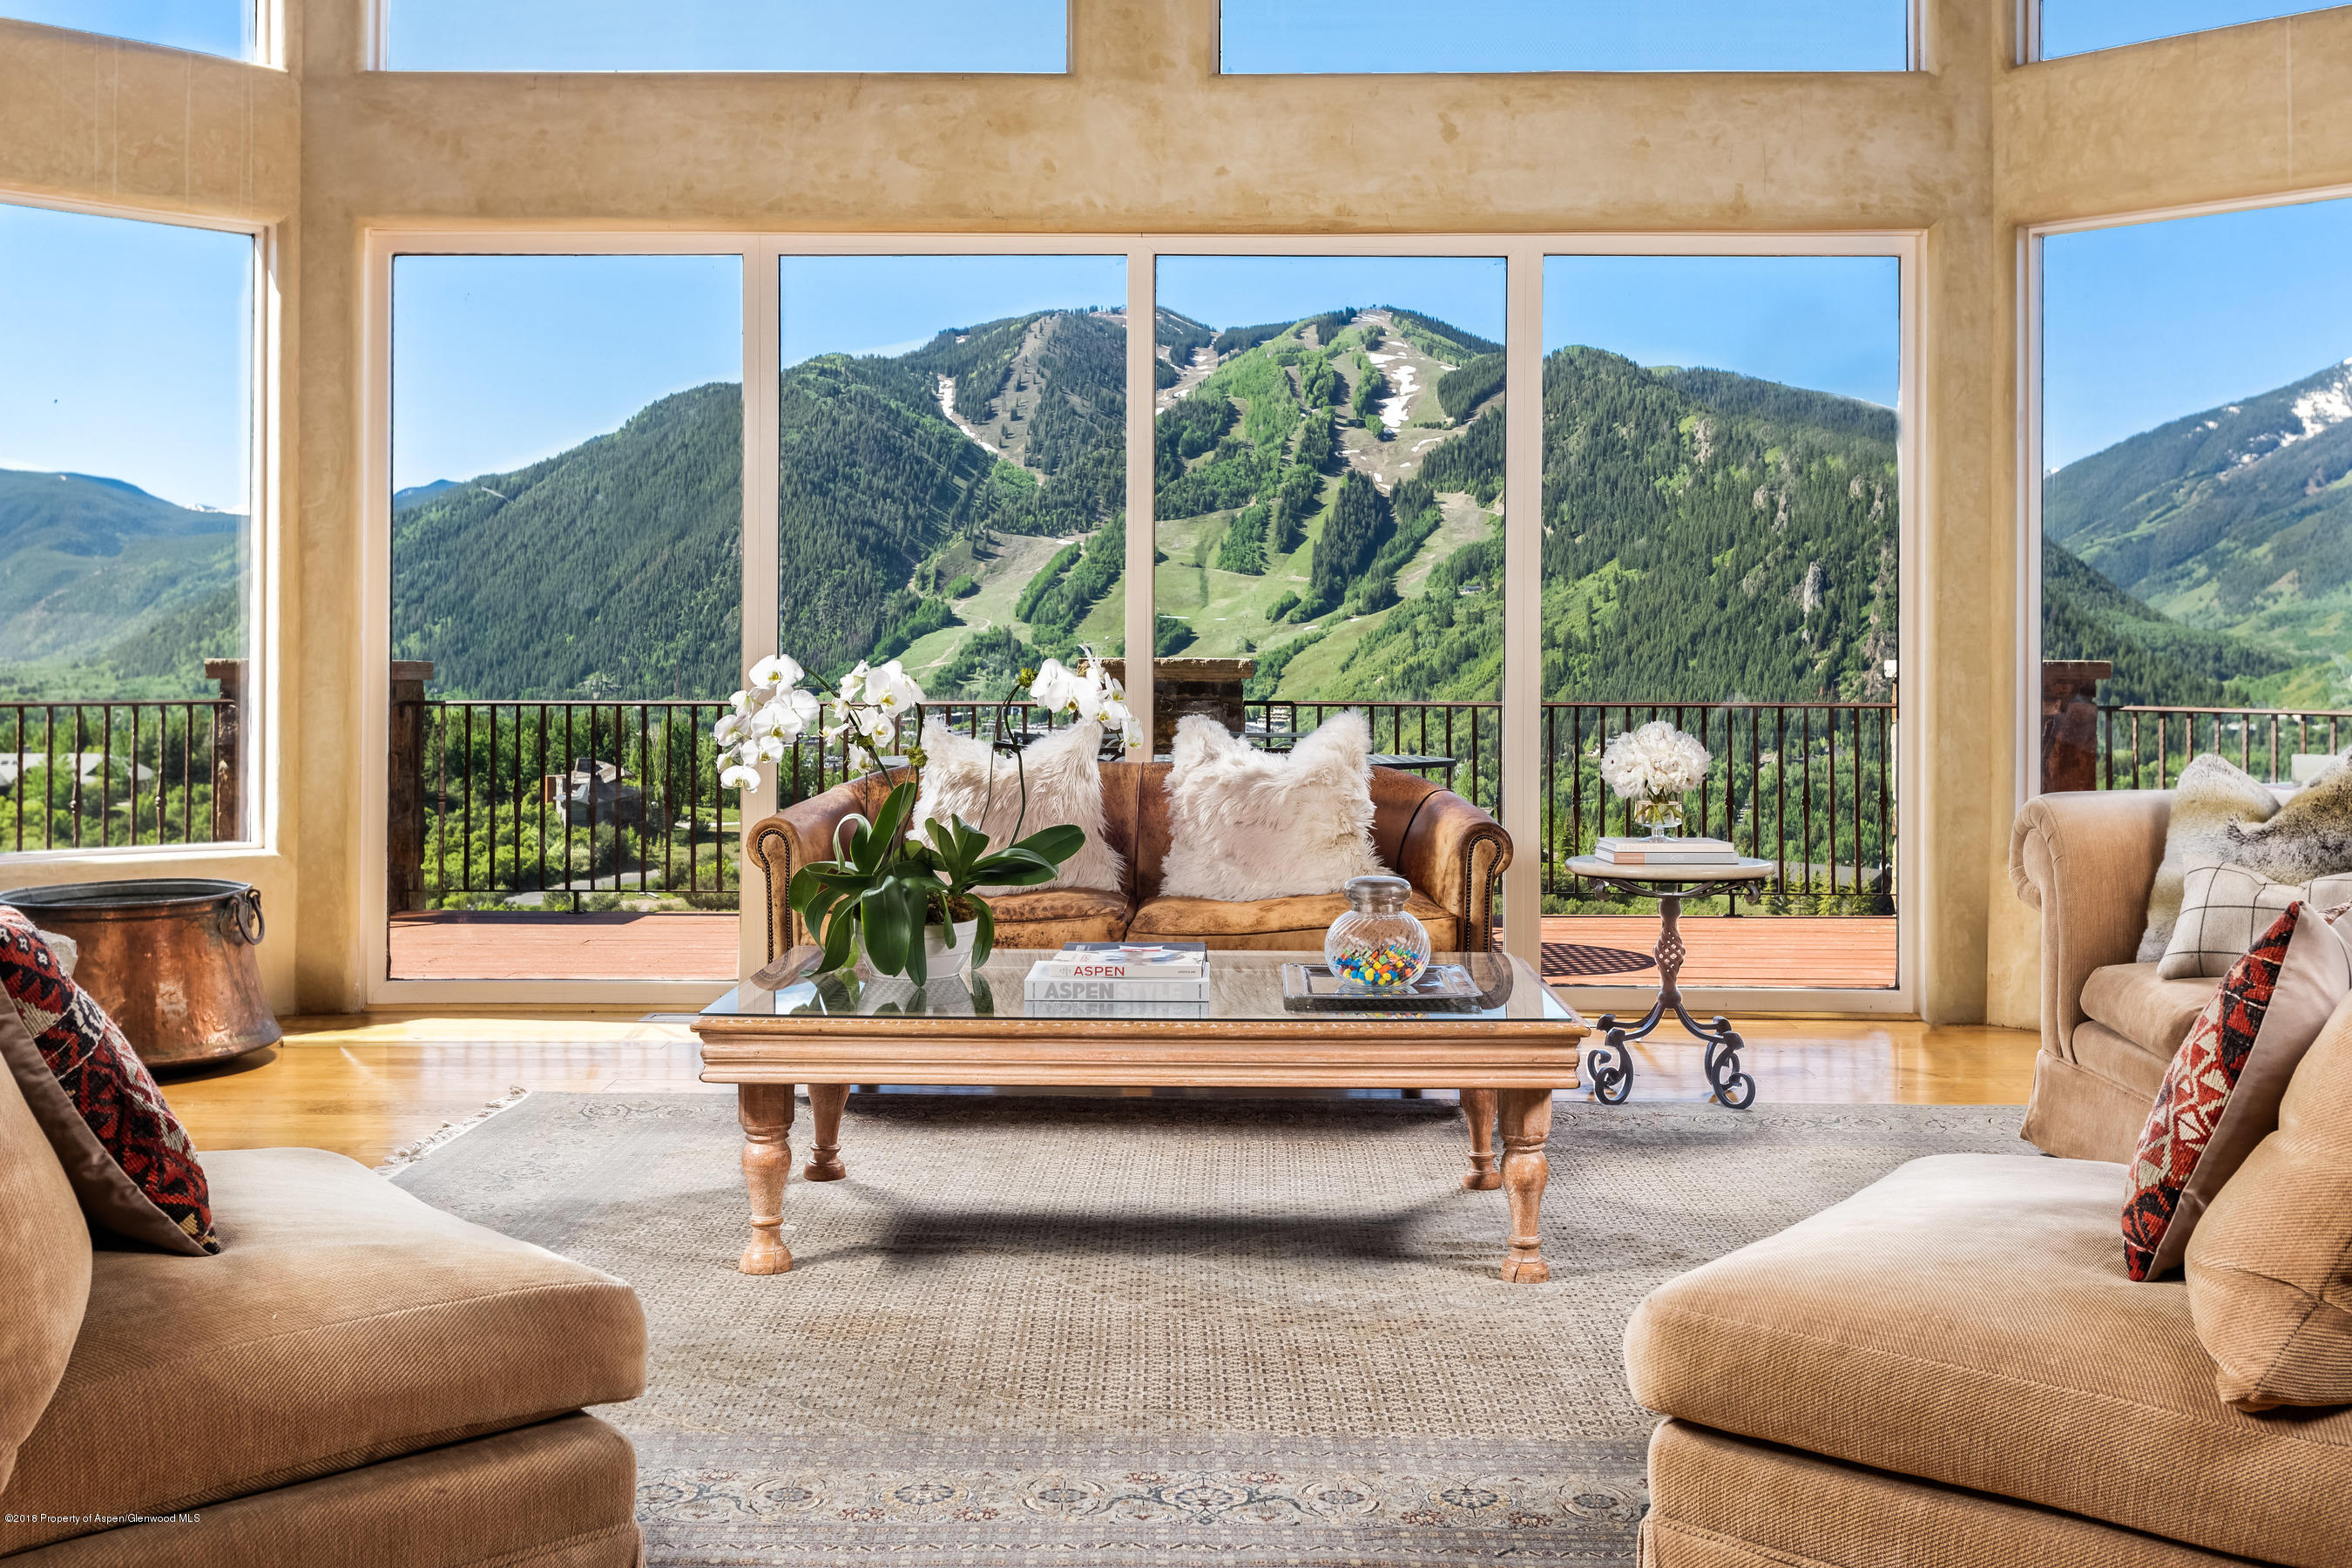 476 Wrights Road - Red Mountain, Colorado